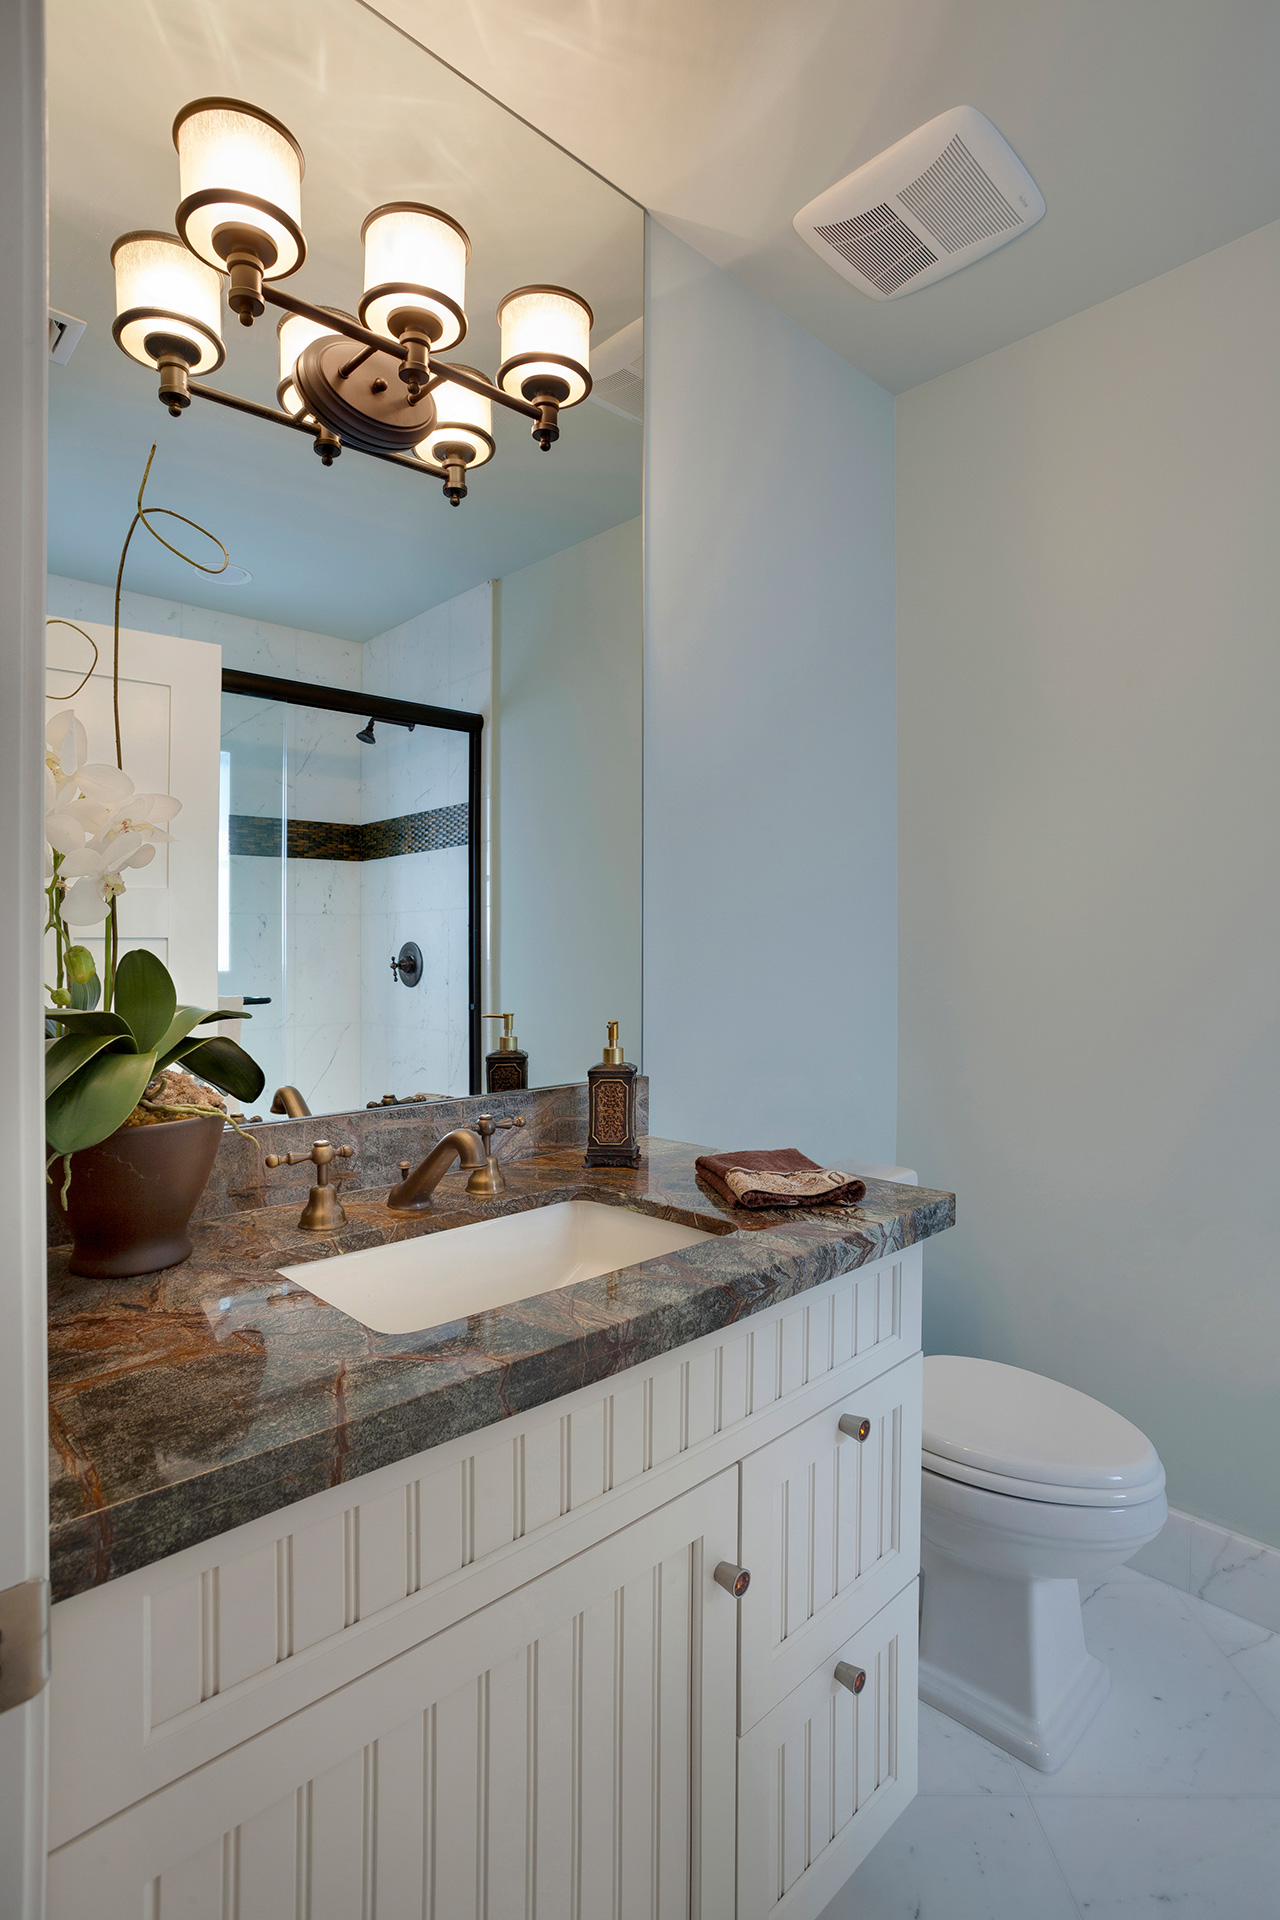 Traditional Baths - The Place For Kitchens and Baths